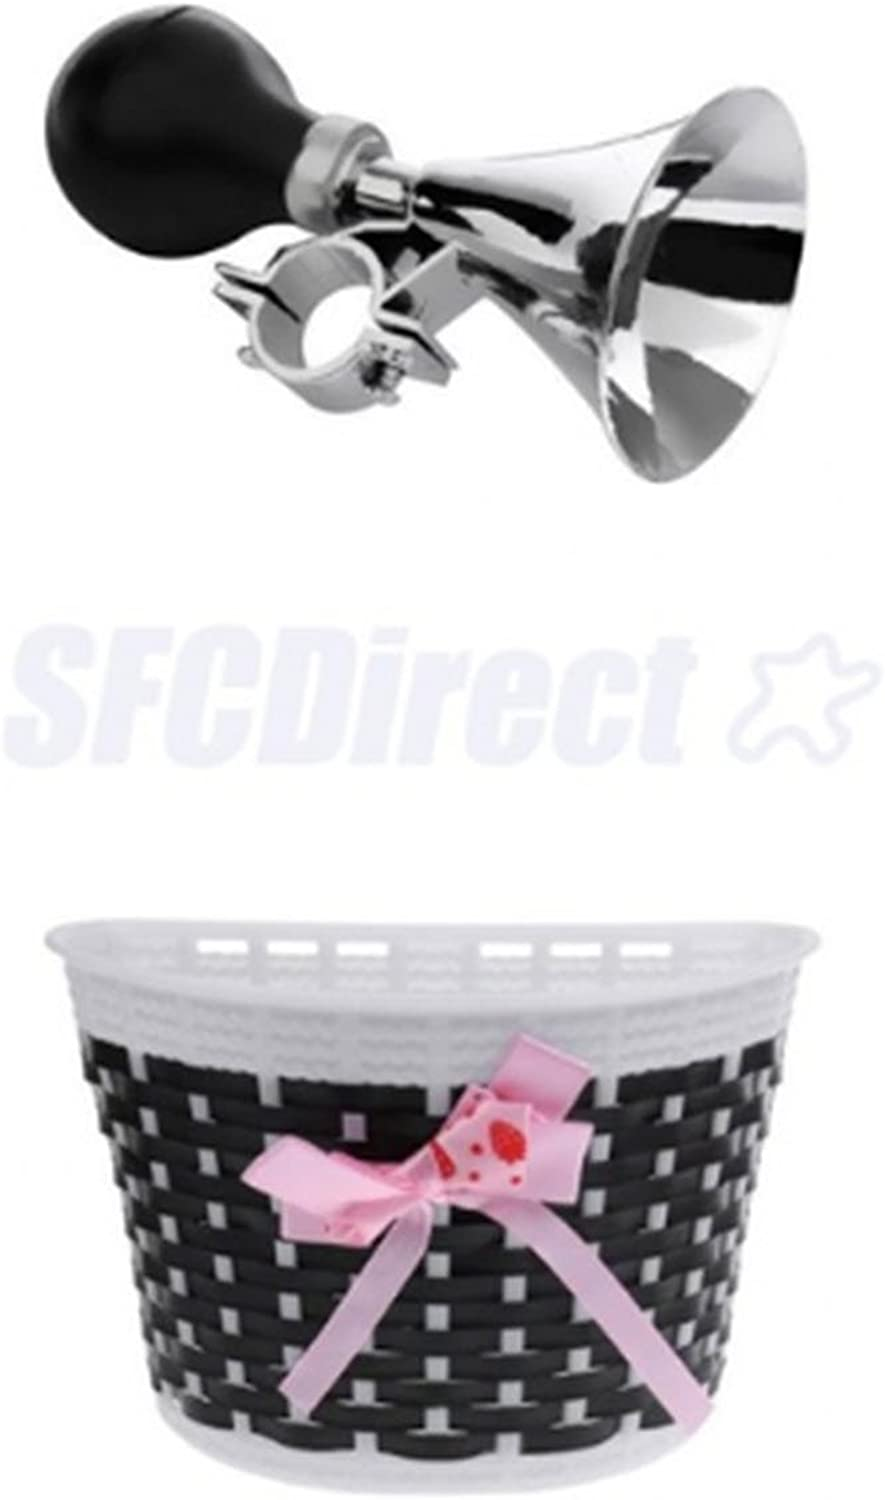 Scooter Bicycle Front Basket Bowknot Bike Shopping Holder, Classical Ring Horn Safety Kids Bike Alarm Bell Bike Accessory Black